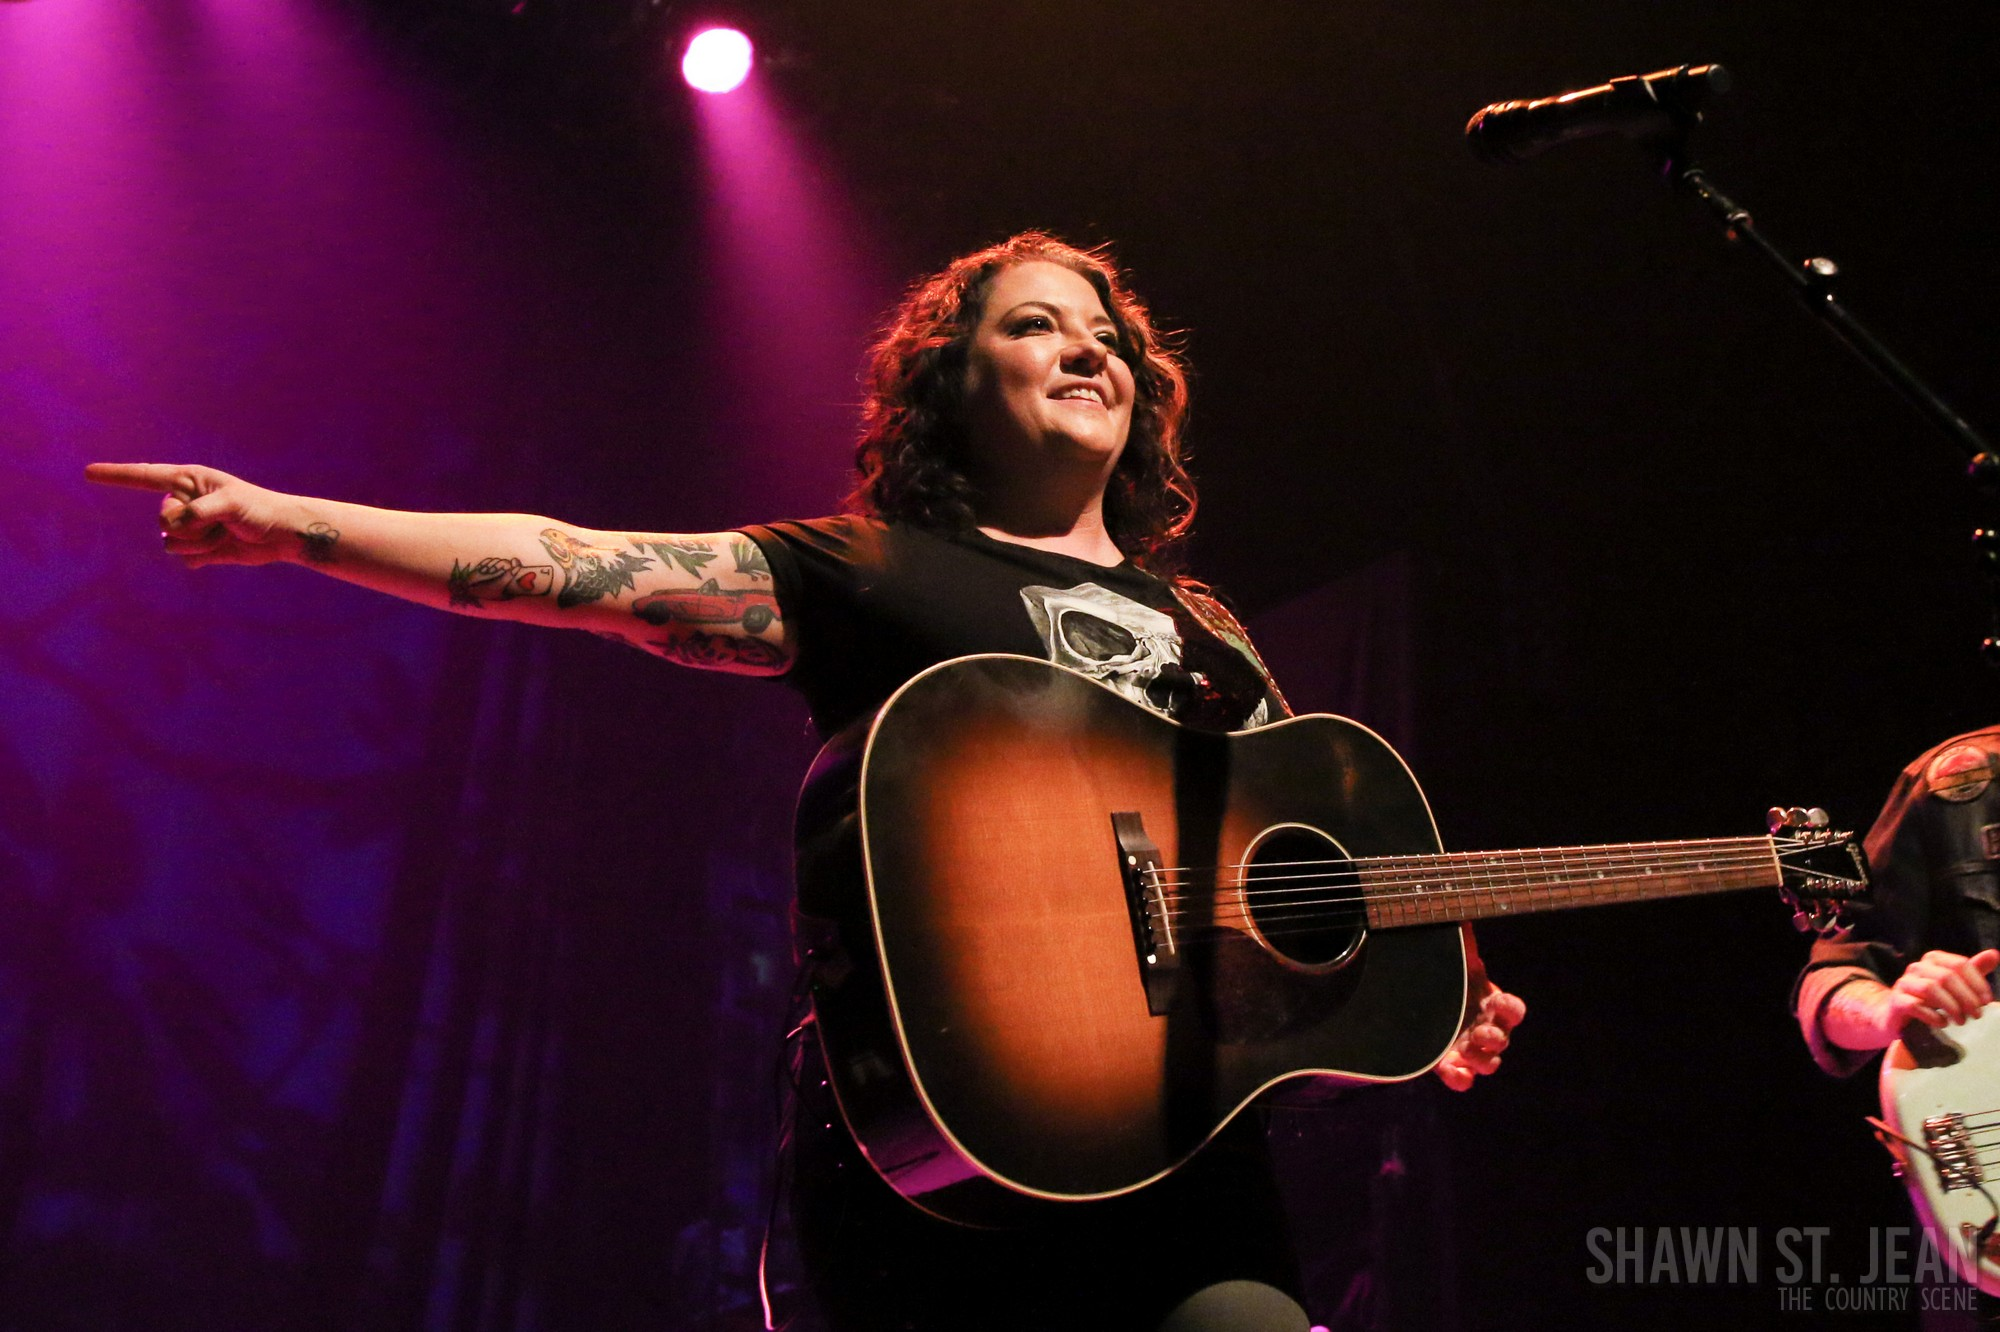 Ashley McBryde at Gramercy Theatre in NYC, December 5, 2018. Photo by Shawn St. Jean.